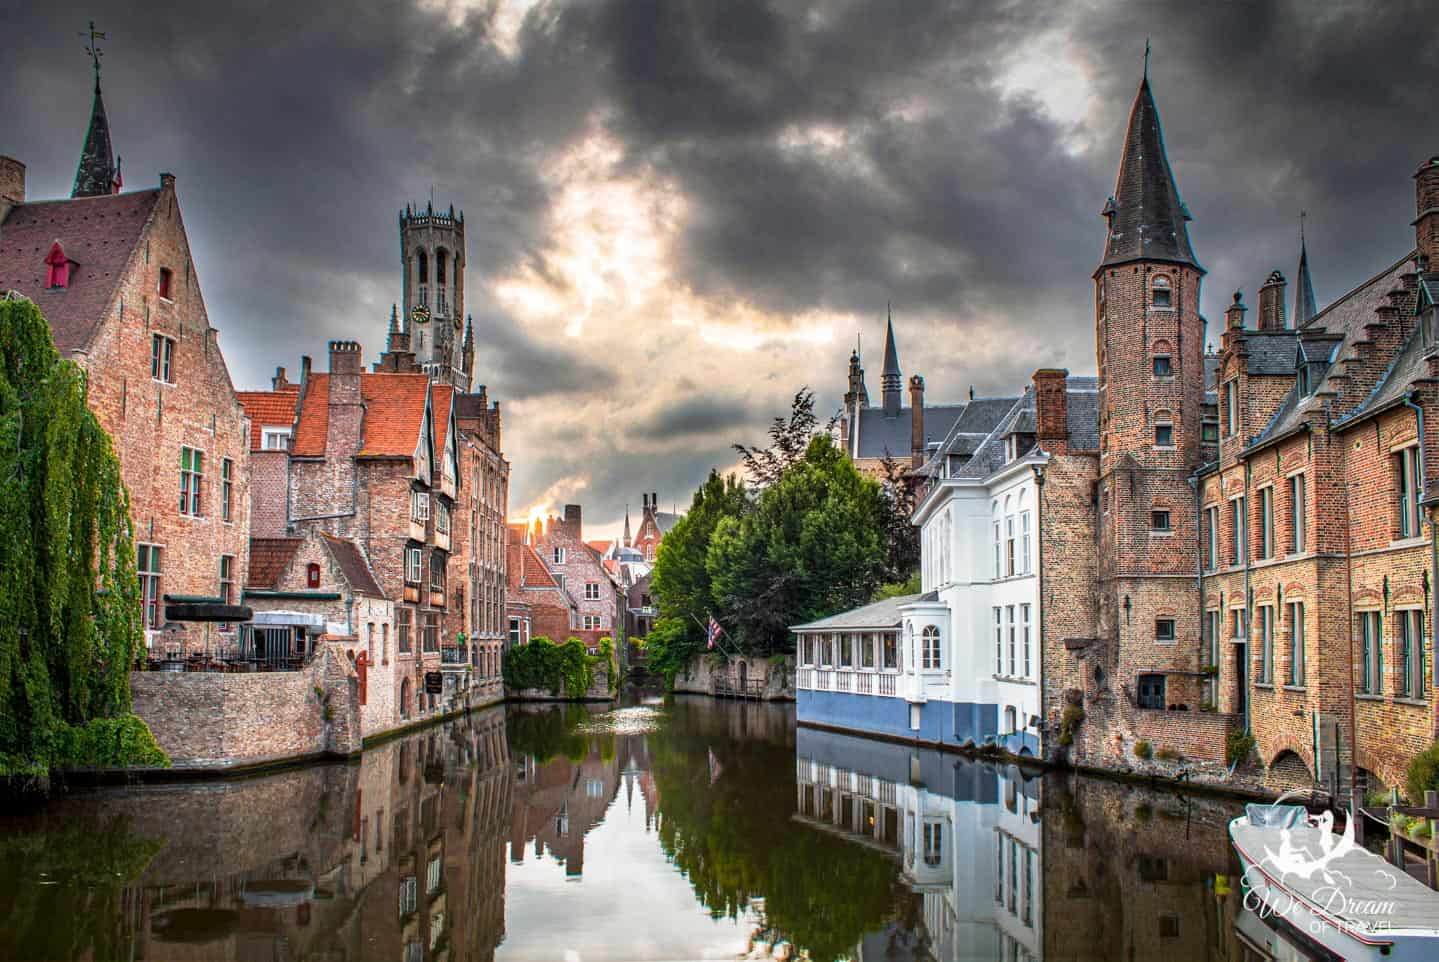 The historic city of Bruges in Belgium has charm, history, and drama all in once.